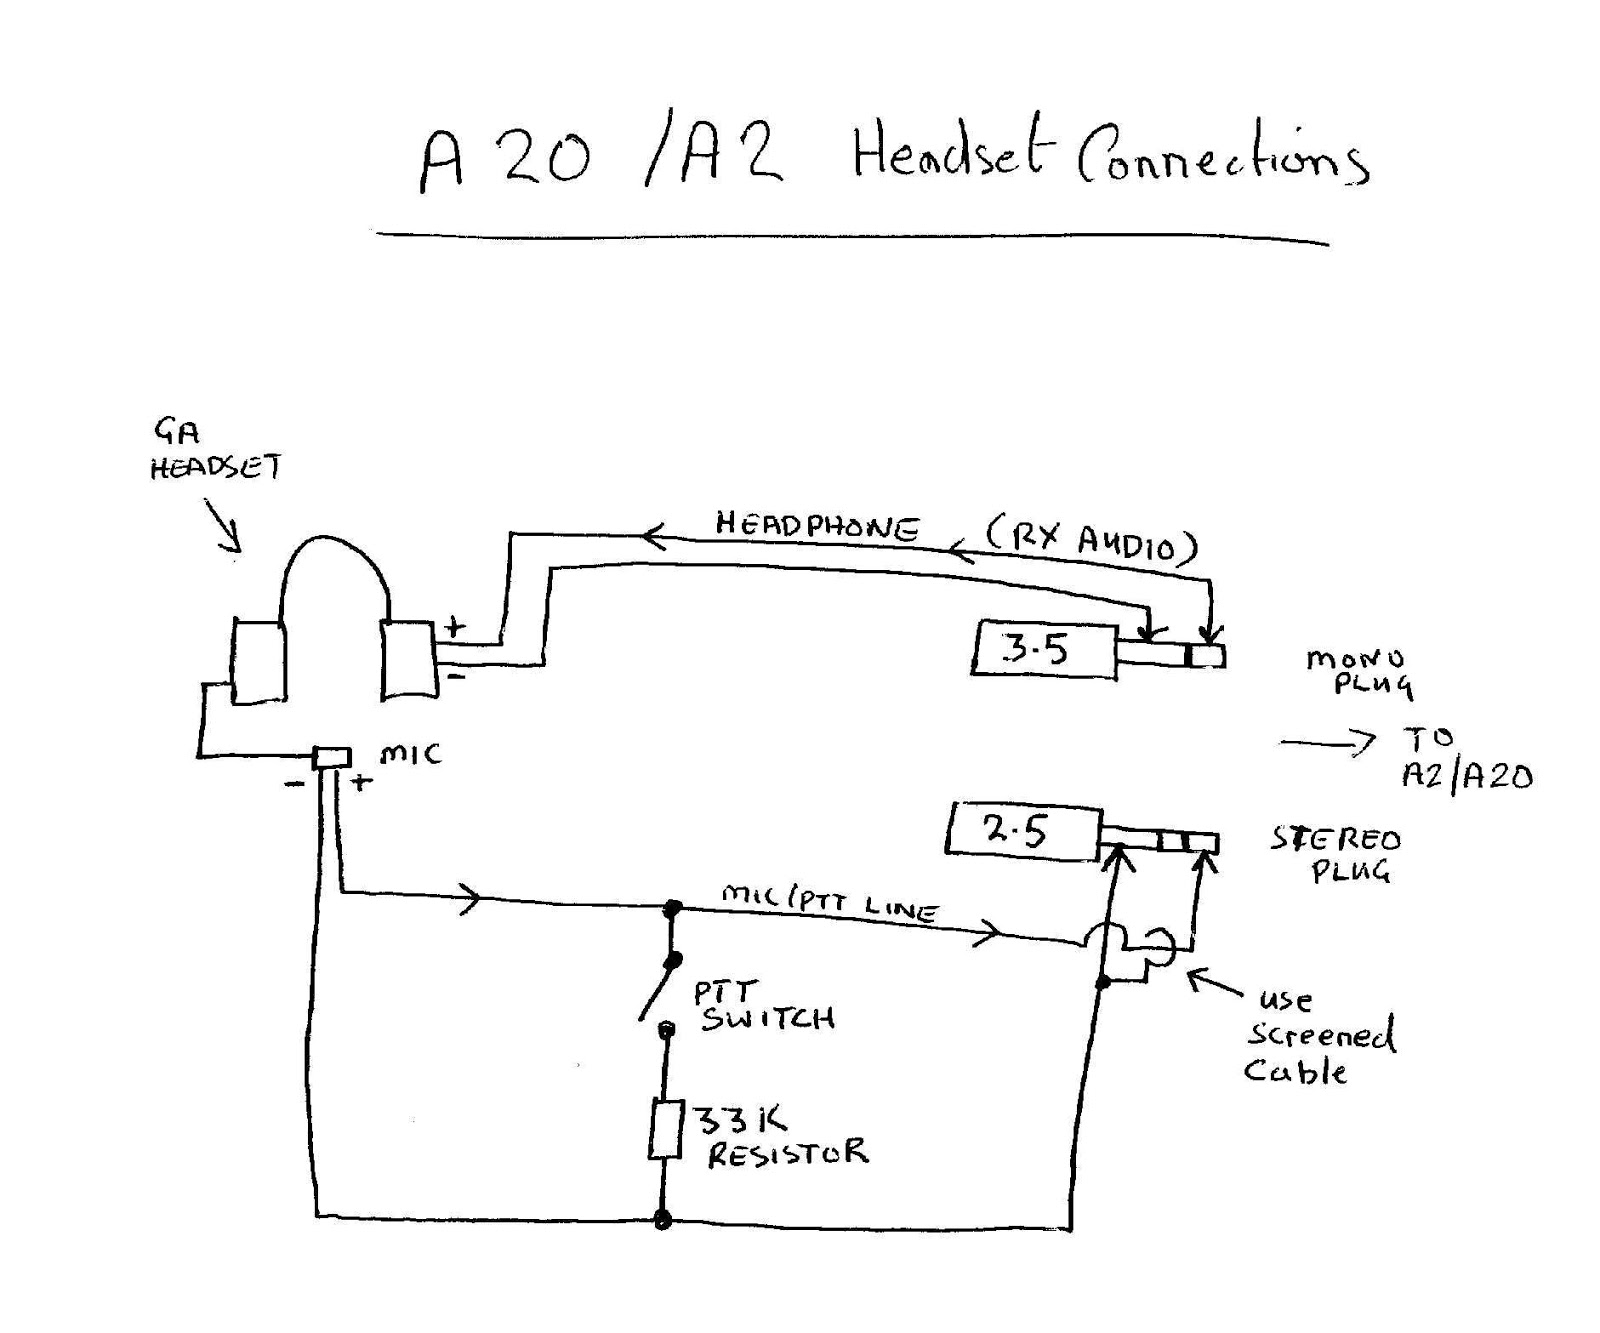 Icom A210 Wiring Diagram Data Powercon Guitar Speaker Cabinet Harness Extraordinary Marshall Wire Rh 3dhomedesign Genan Pw A0 Idef0 Of